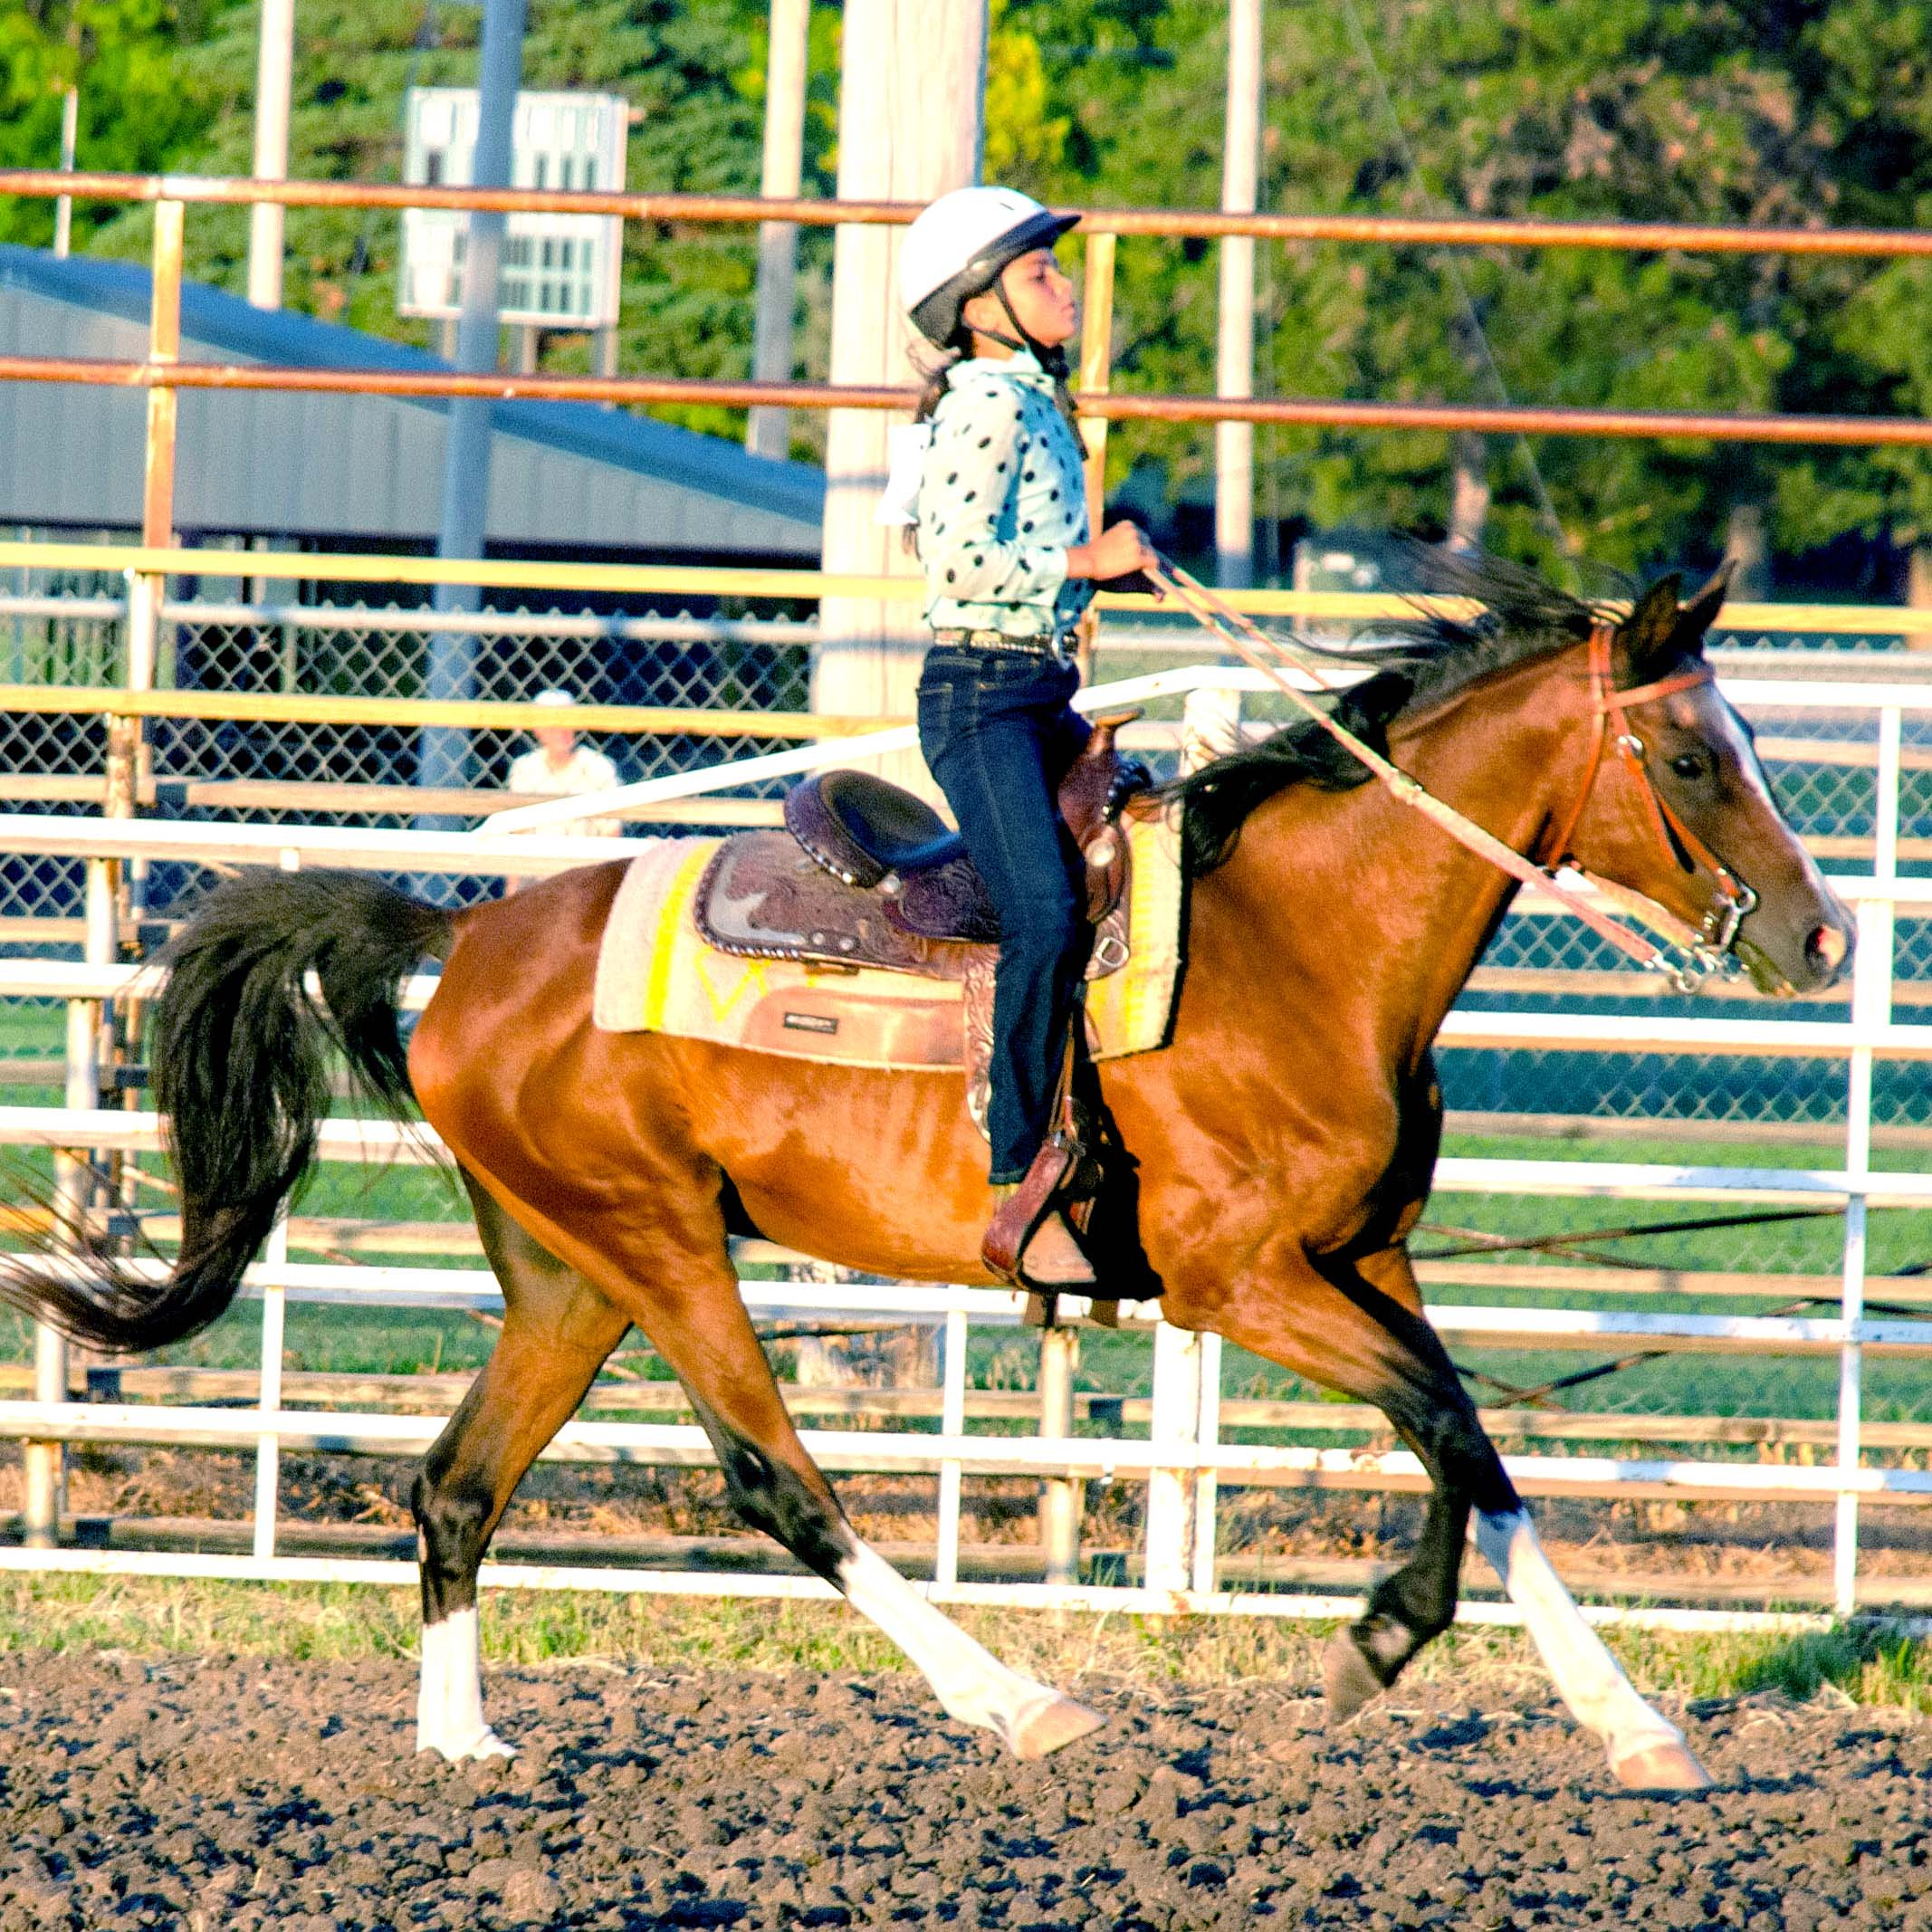 Central National Bank of Hillsboro President Mike Padgett presents a $20,000 donation to Tabor College President Jules Glanzer for the college's fundraising campaign for a new Center for the Arts, as Central National Bank Executive Vice President Sara Girard looks on.